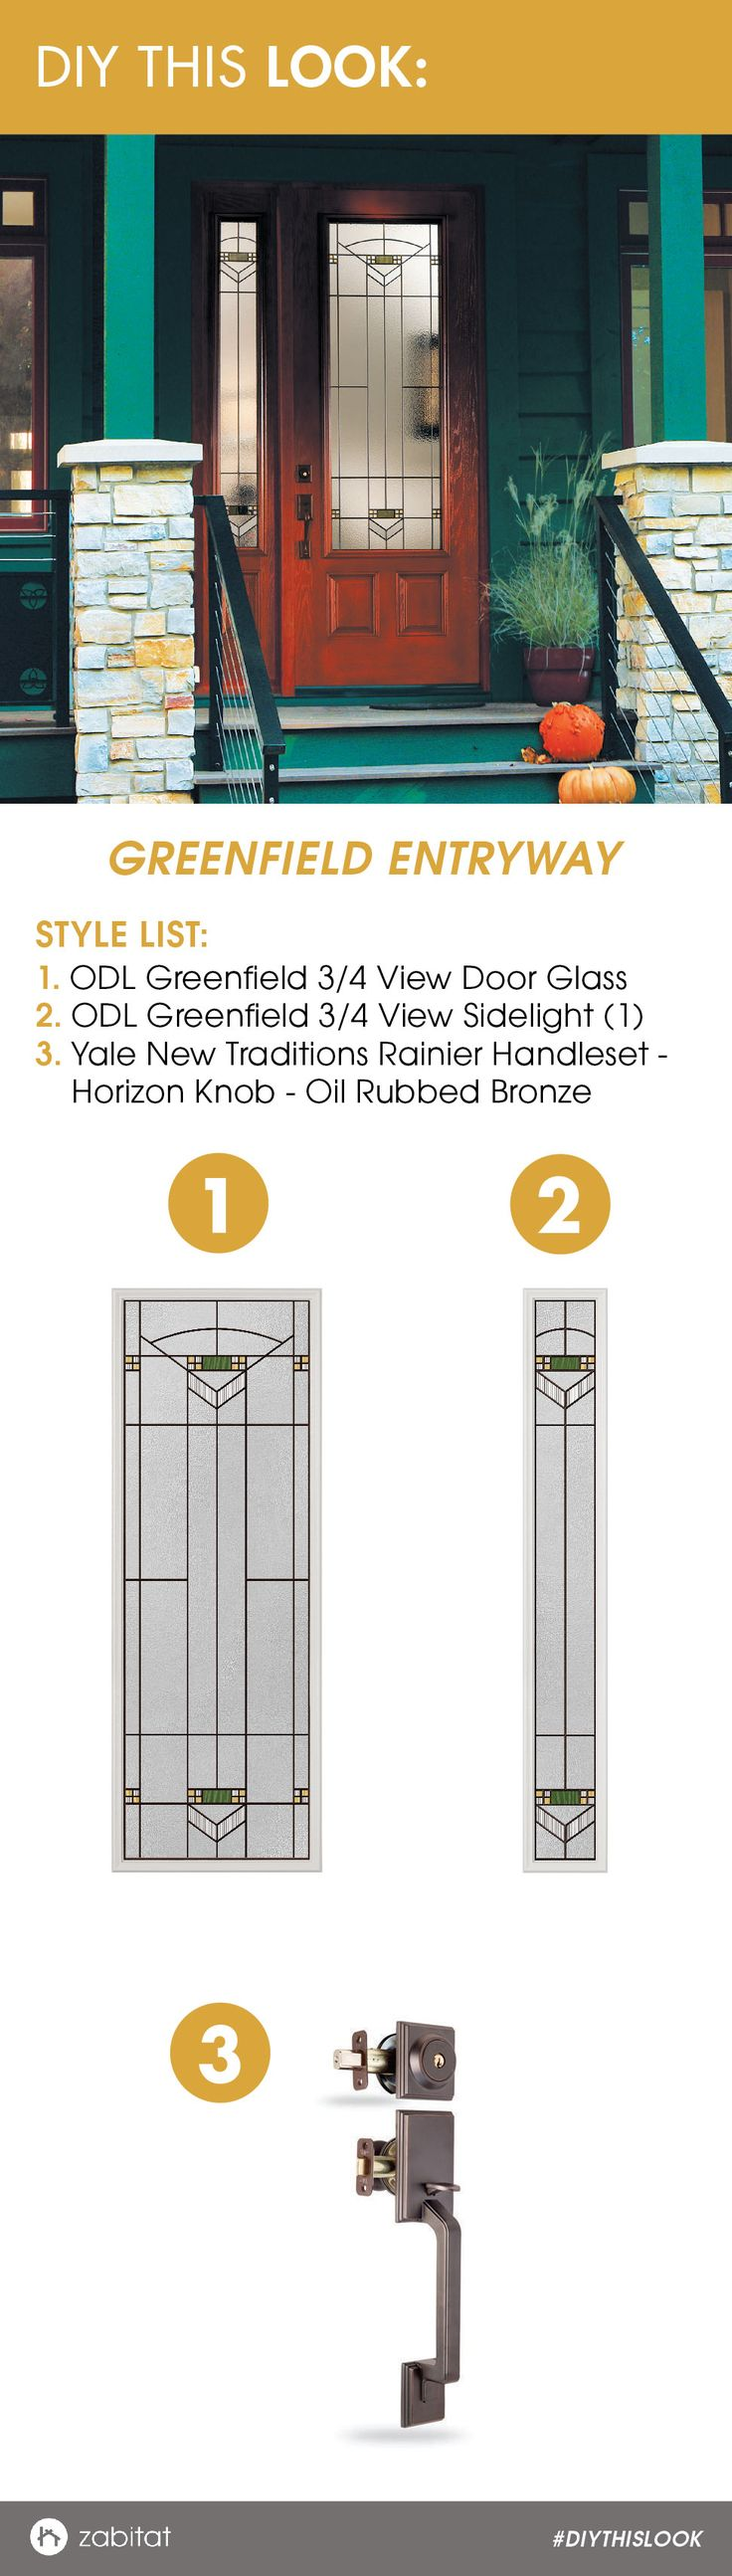 ODL Greenfield Door Glass Insert paired with a Yale Oil Rubbed Bronze Handleset